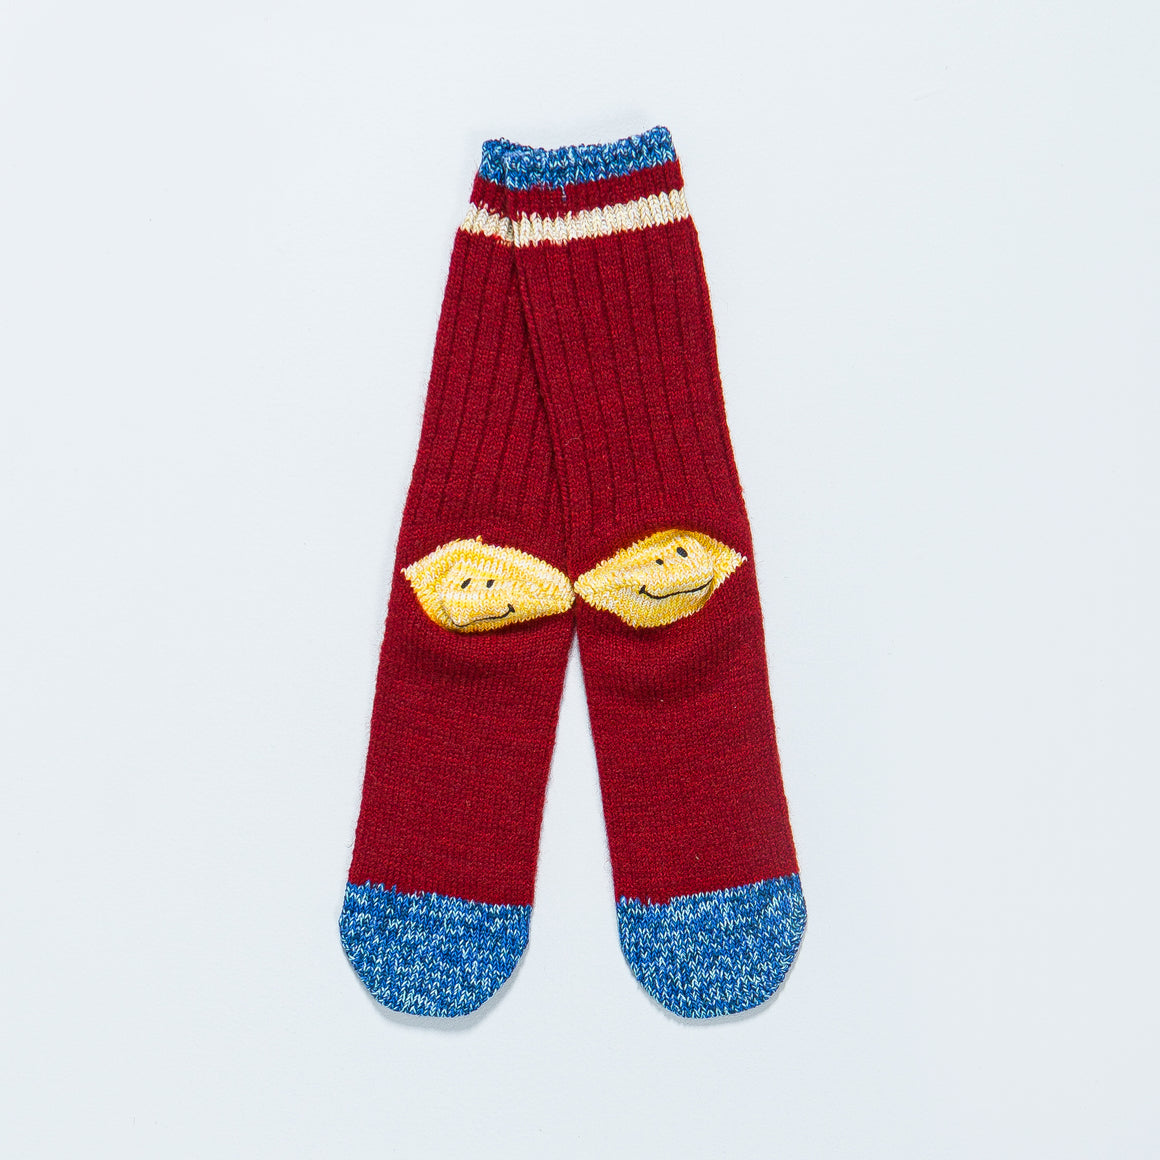 Kapital - 72 Yarns Wool Ivy Smilie Socks - Red - Up There